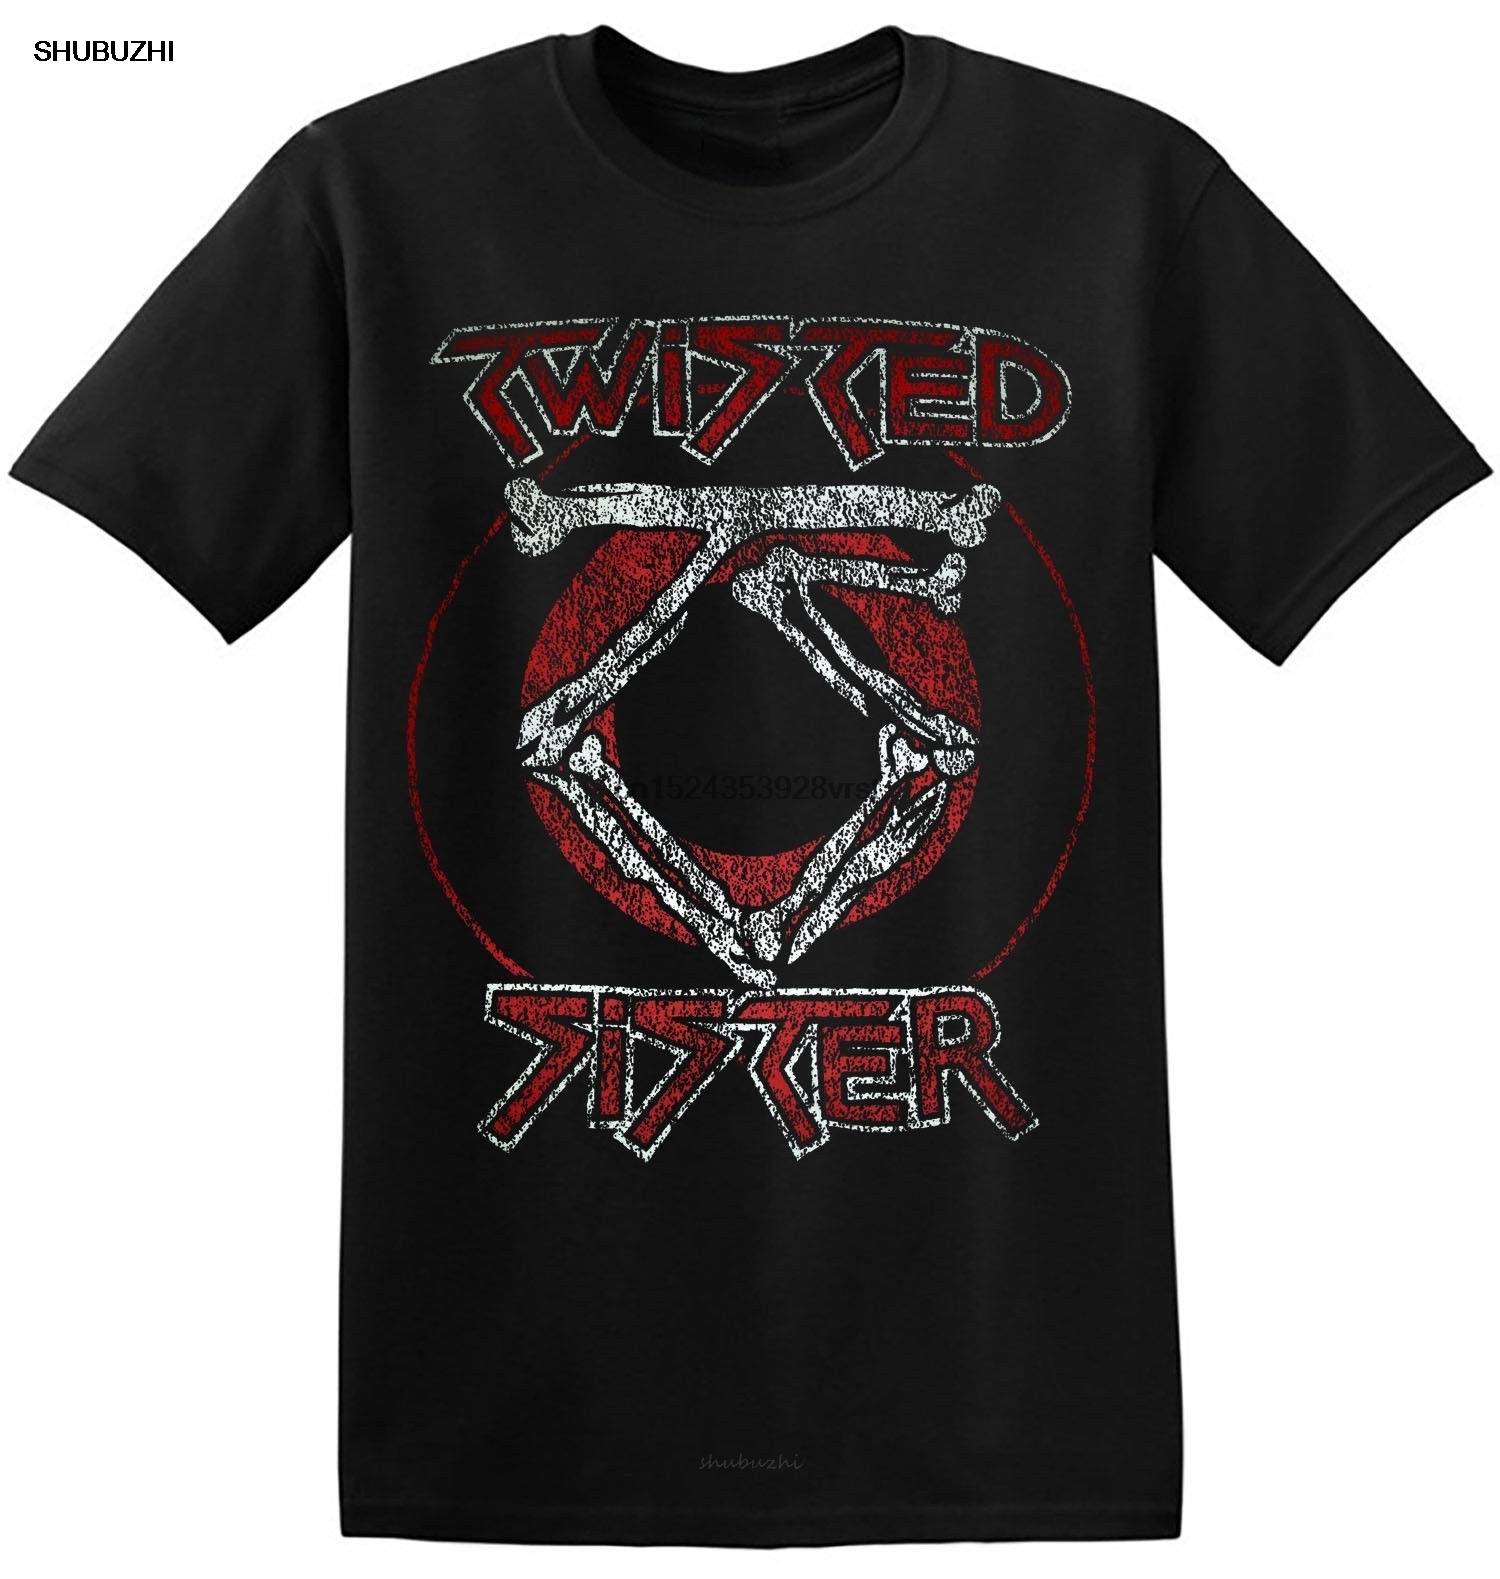 Twisted Sister T Shirt Cool New Black Graphic Print Heavy Rock Band Tees 1-A-202 Hip Hop Tee T Shirt top tee Fashion T Shirt